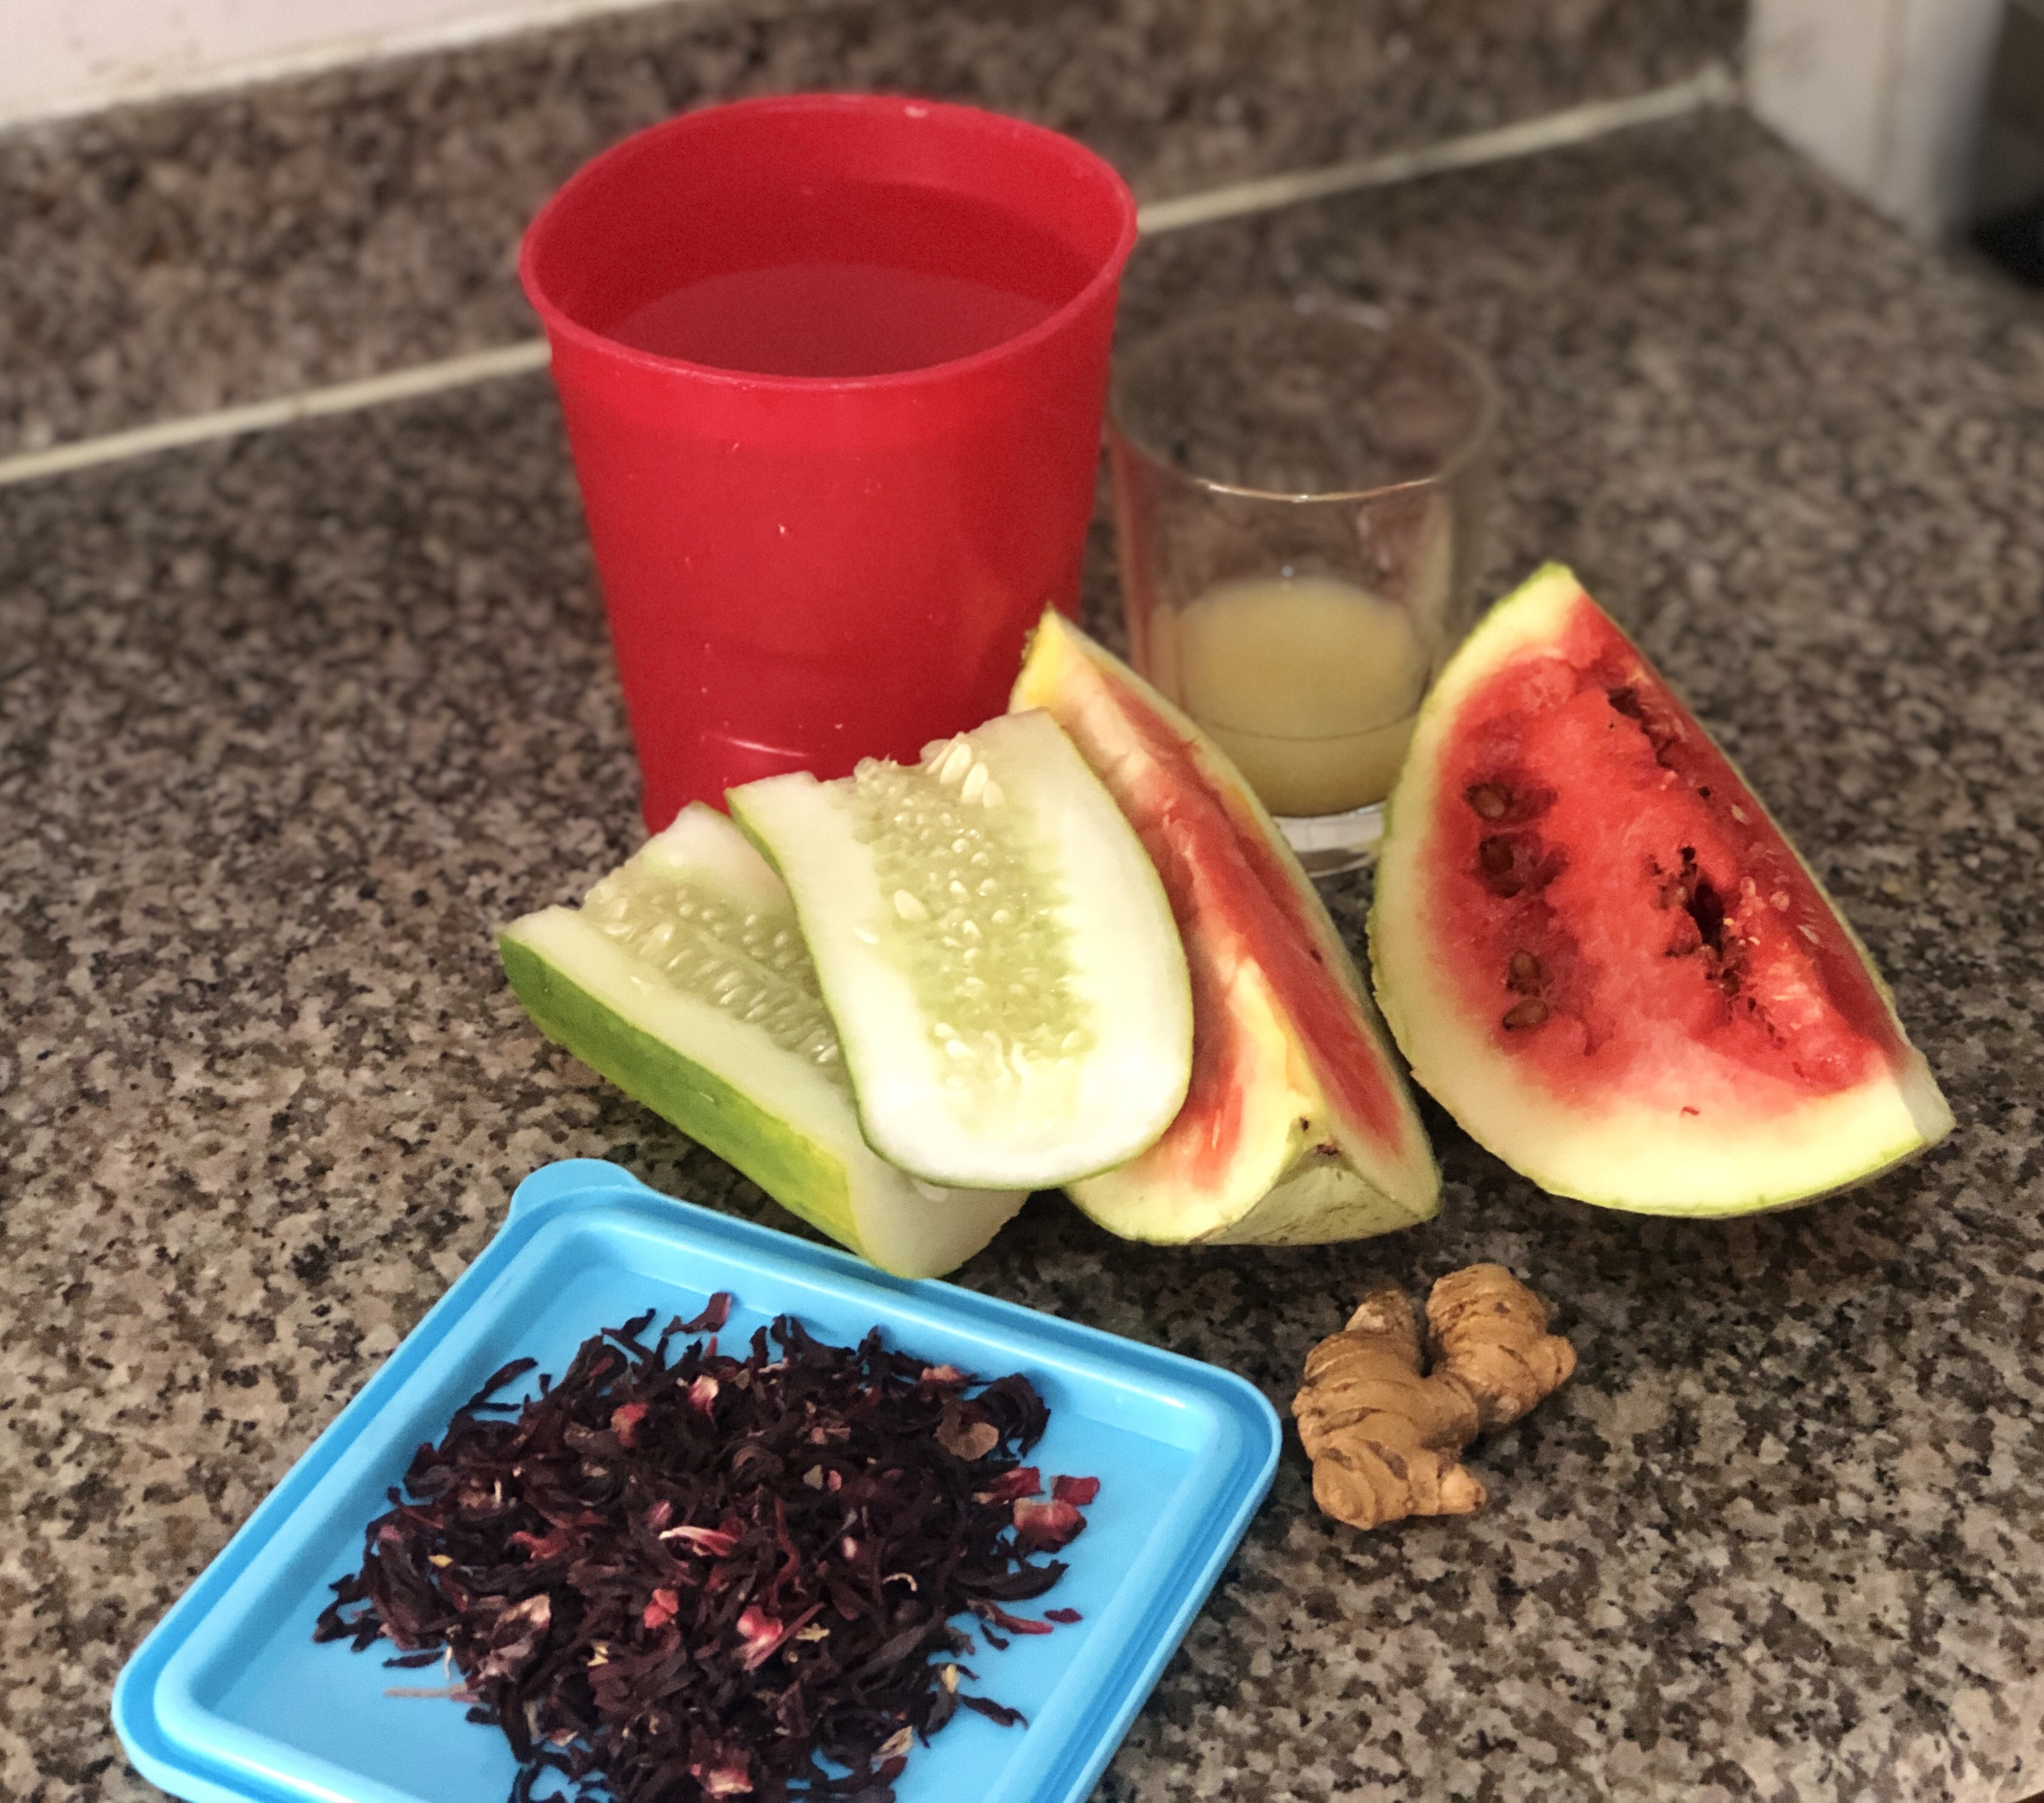 Items for zobo drink